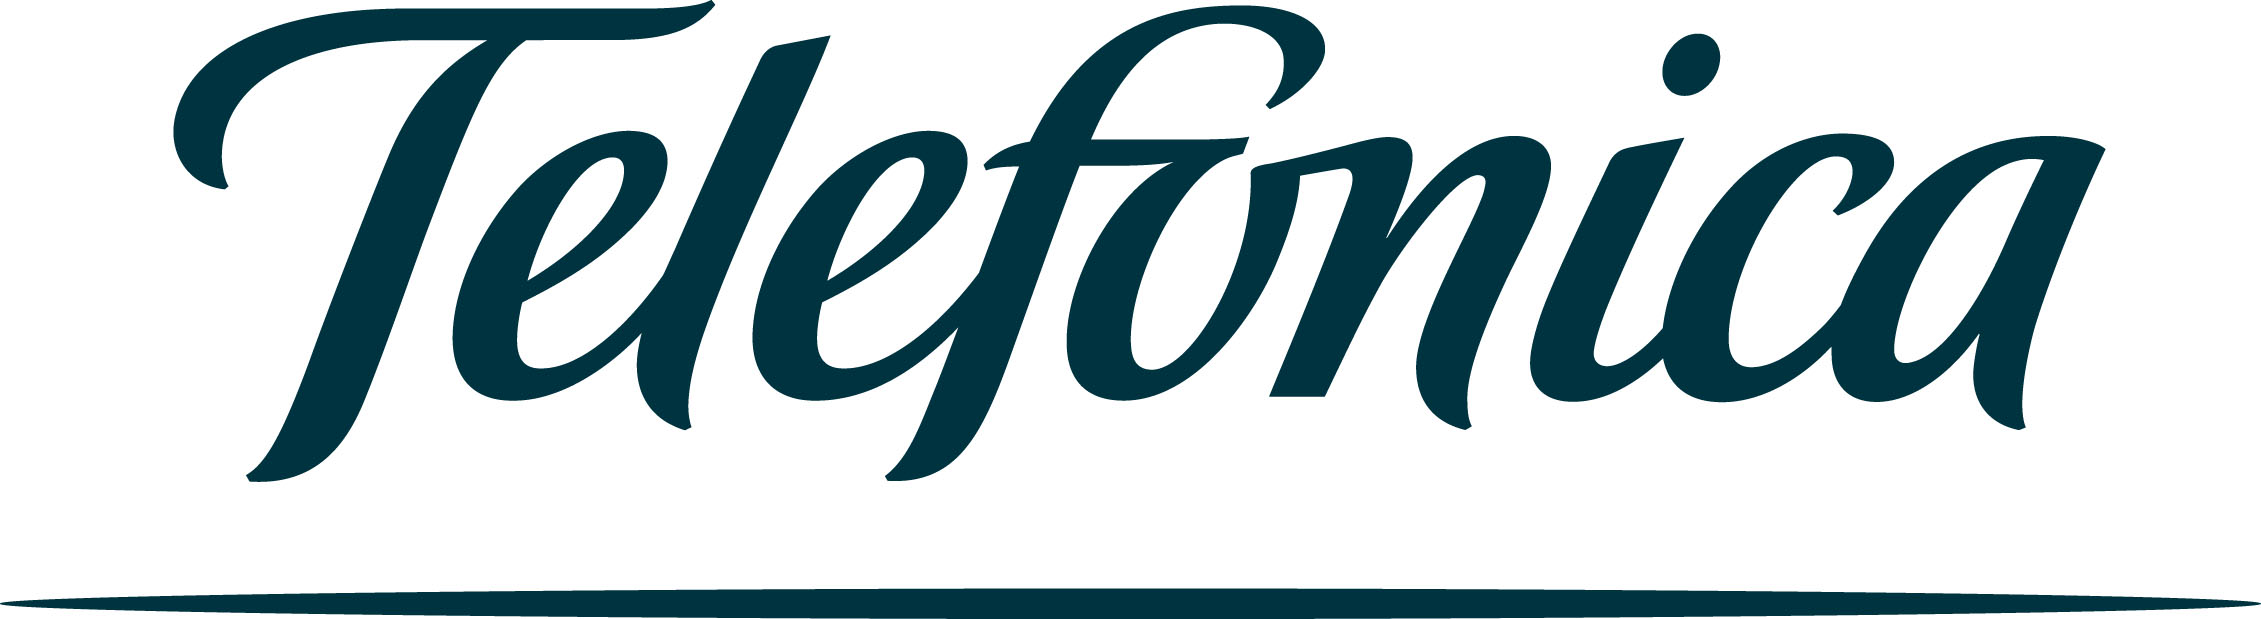 Telefonica International Wholesale Services II, SL